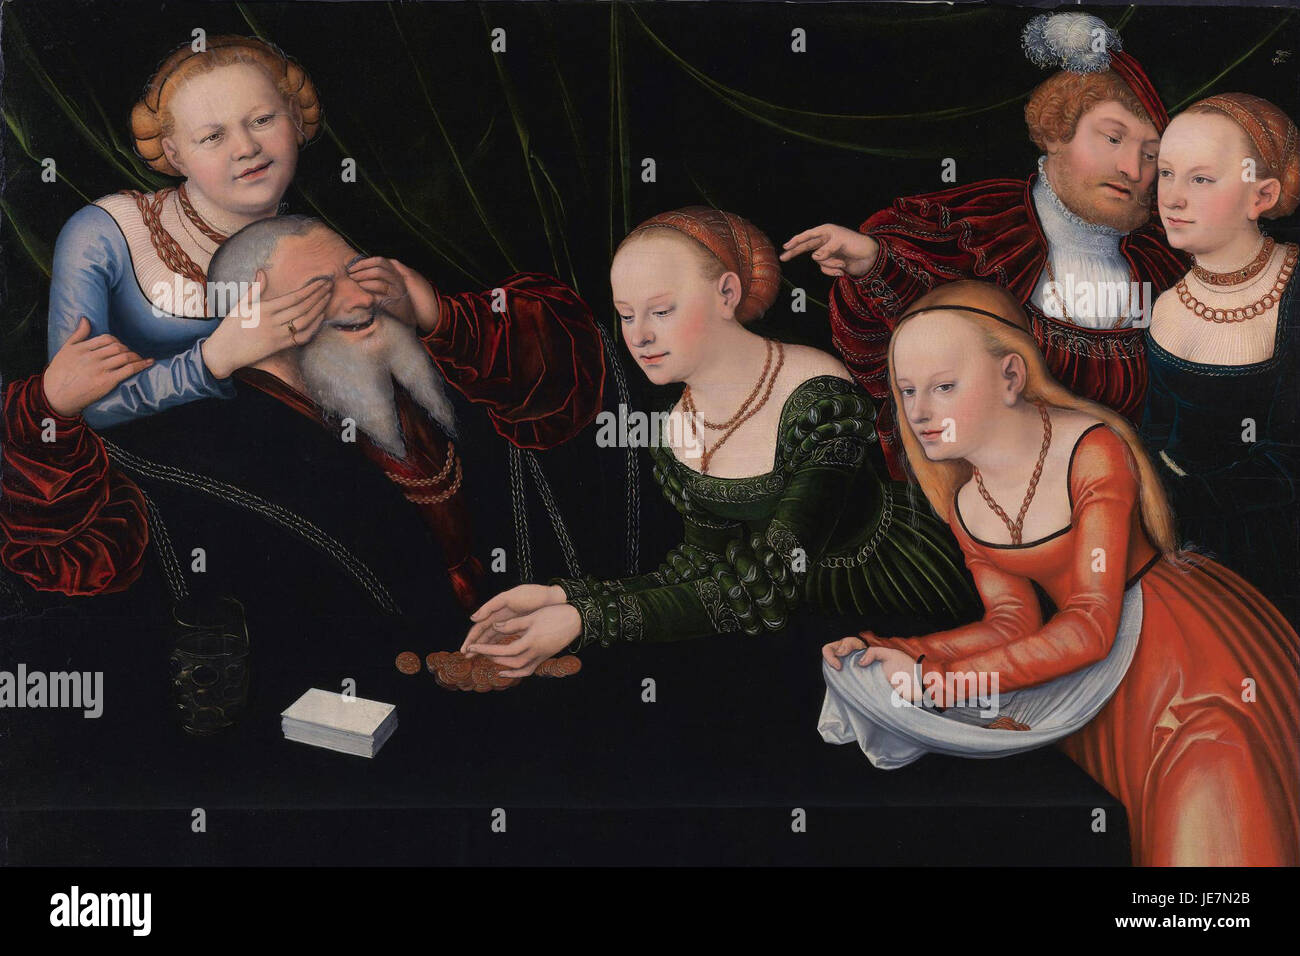 Old man beguiled by courtesans by Lucas Cranach the elder - Stock Image